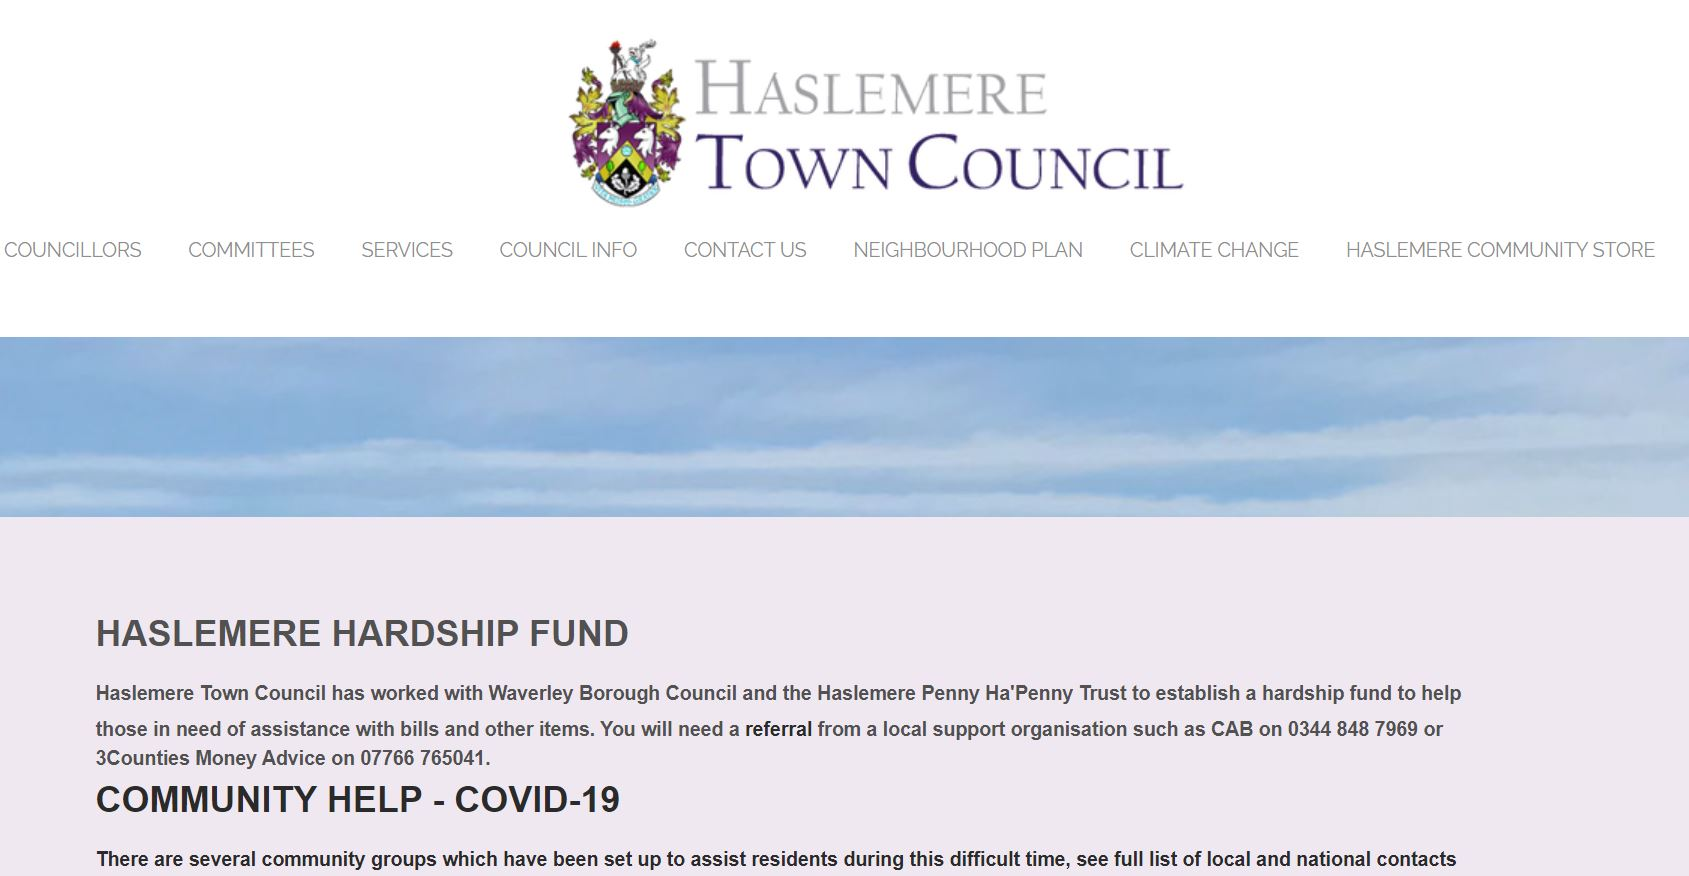 Haslemere Town Council